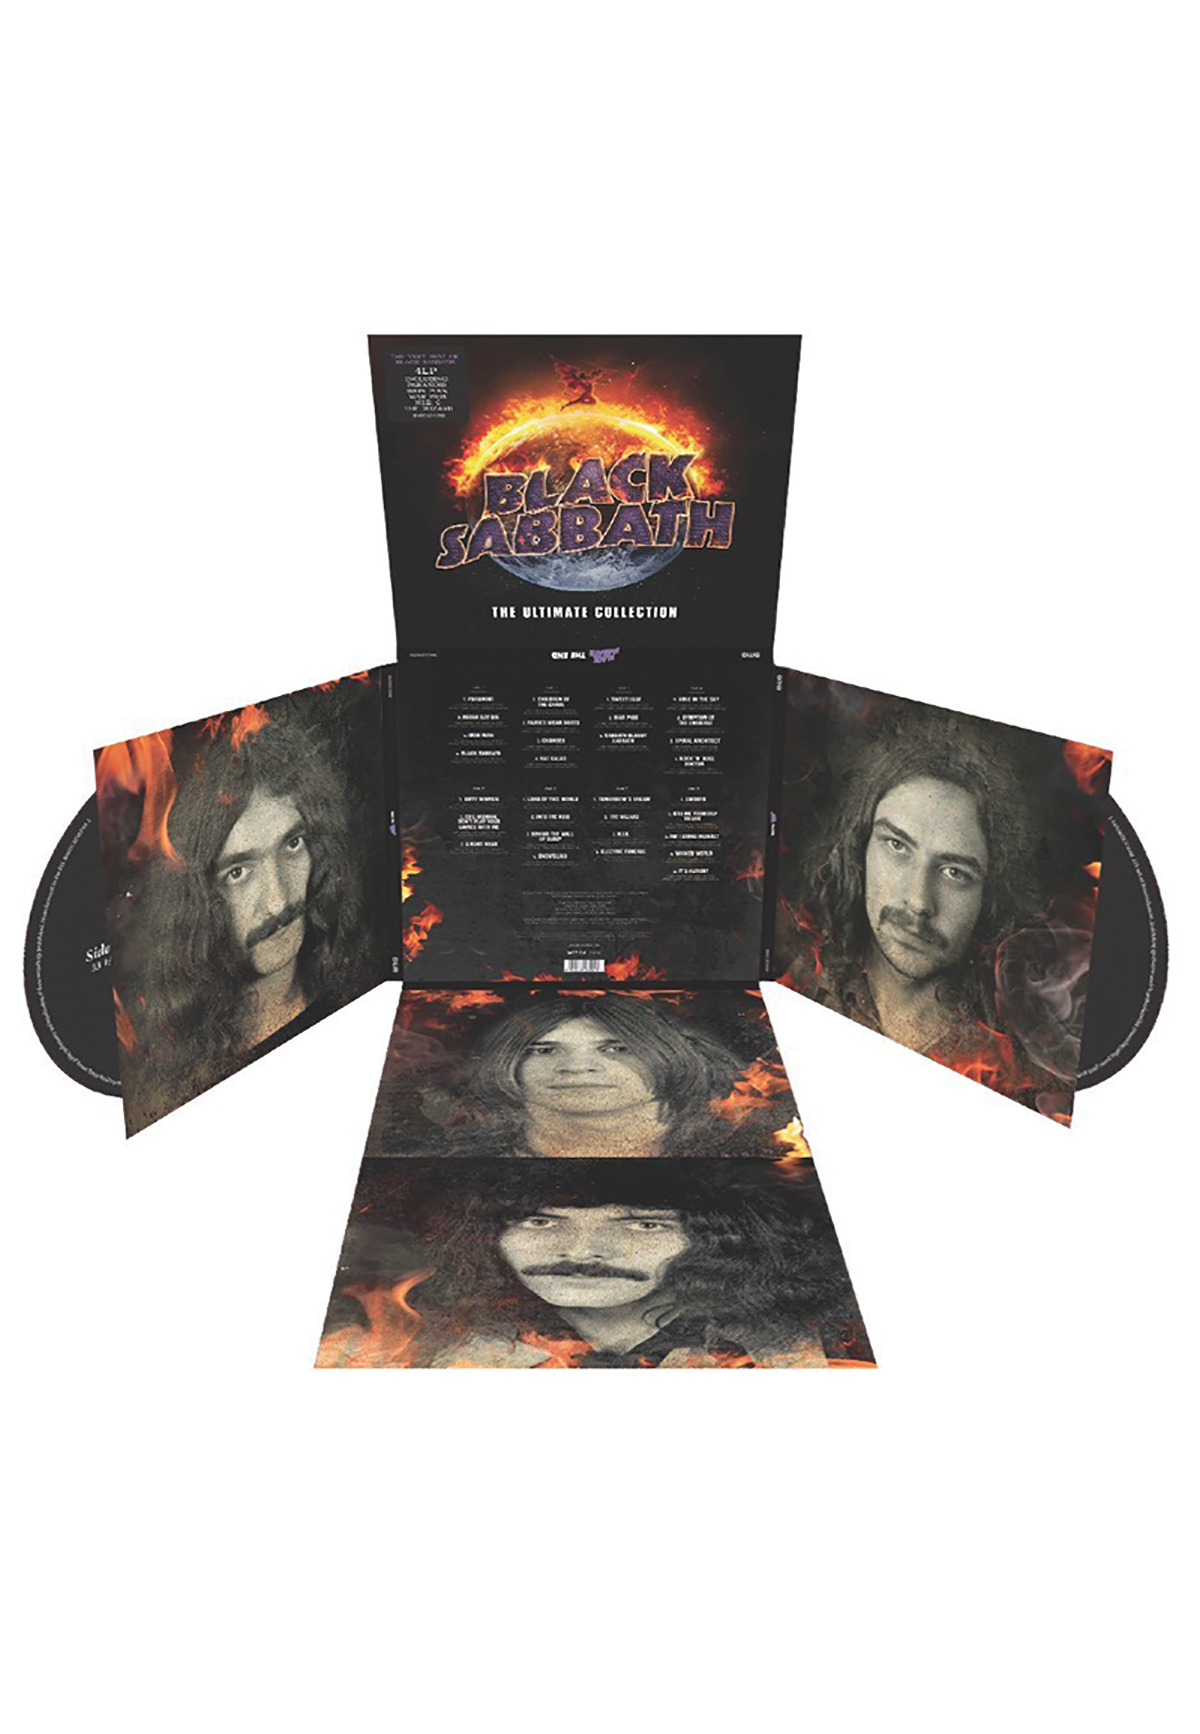 Black Sabbath The Ultimate Collection: The Ultimate Collection 4-LP Set Review